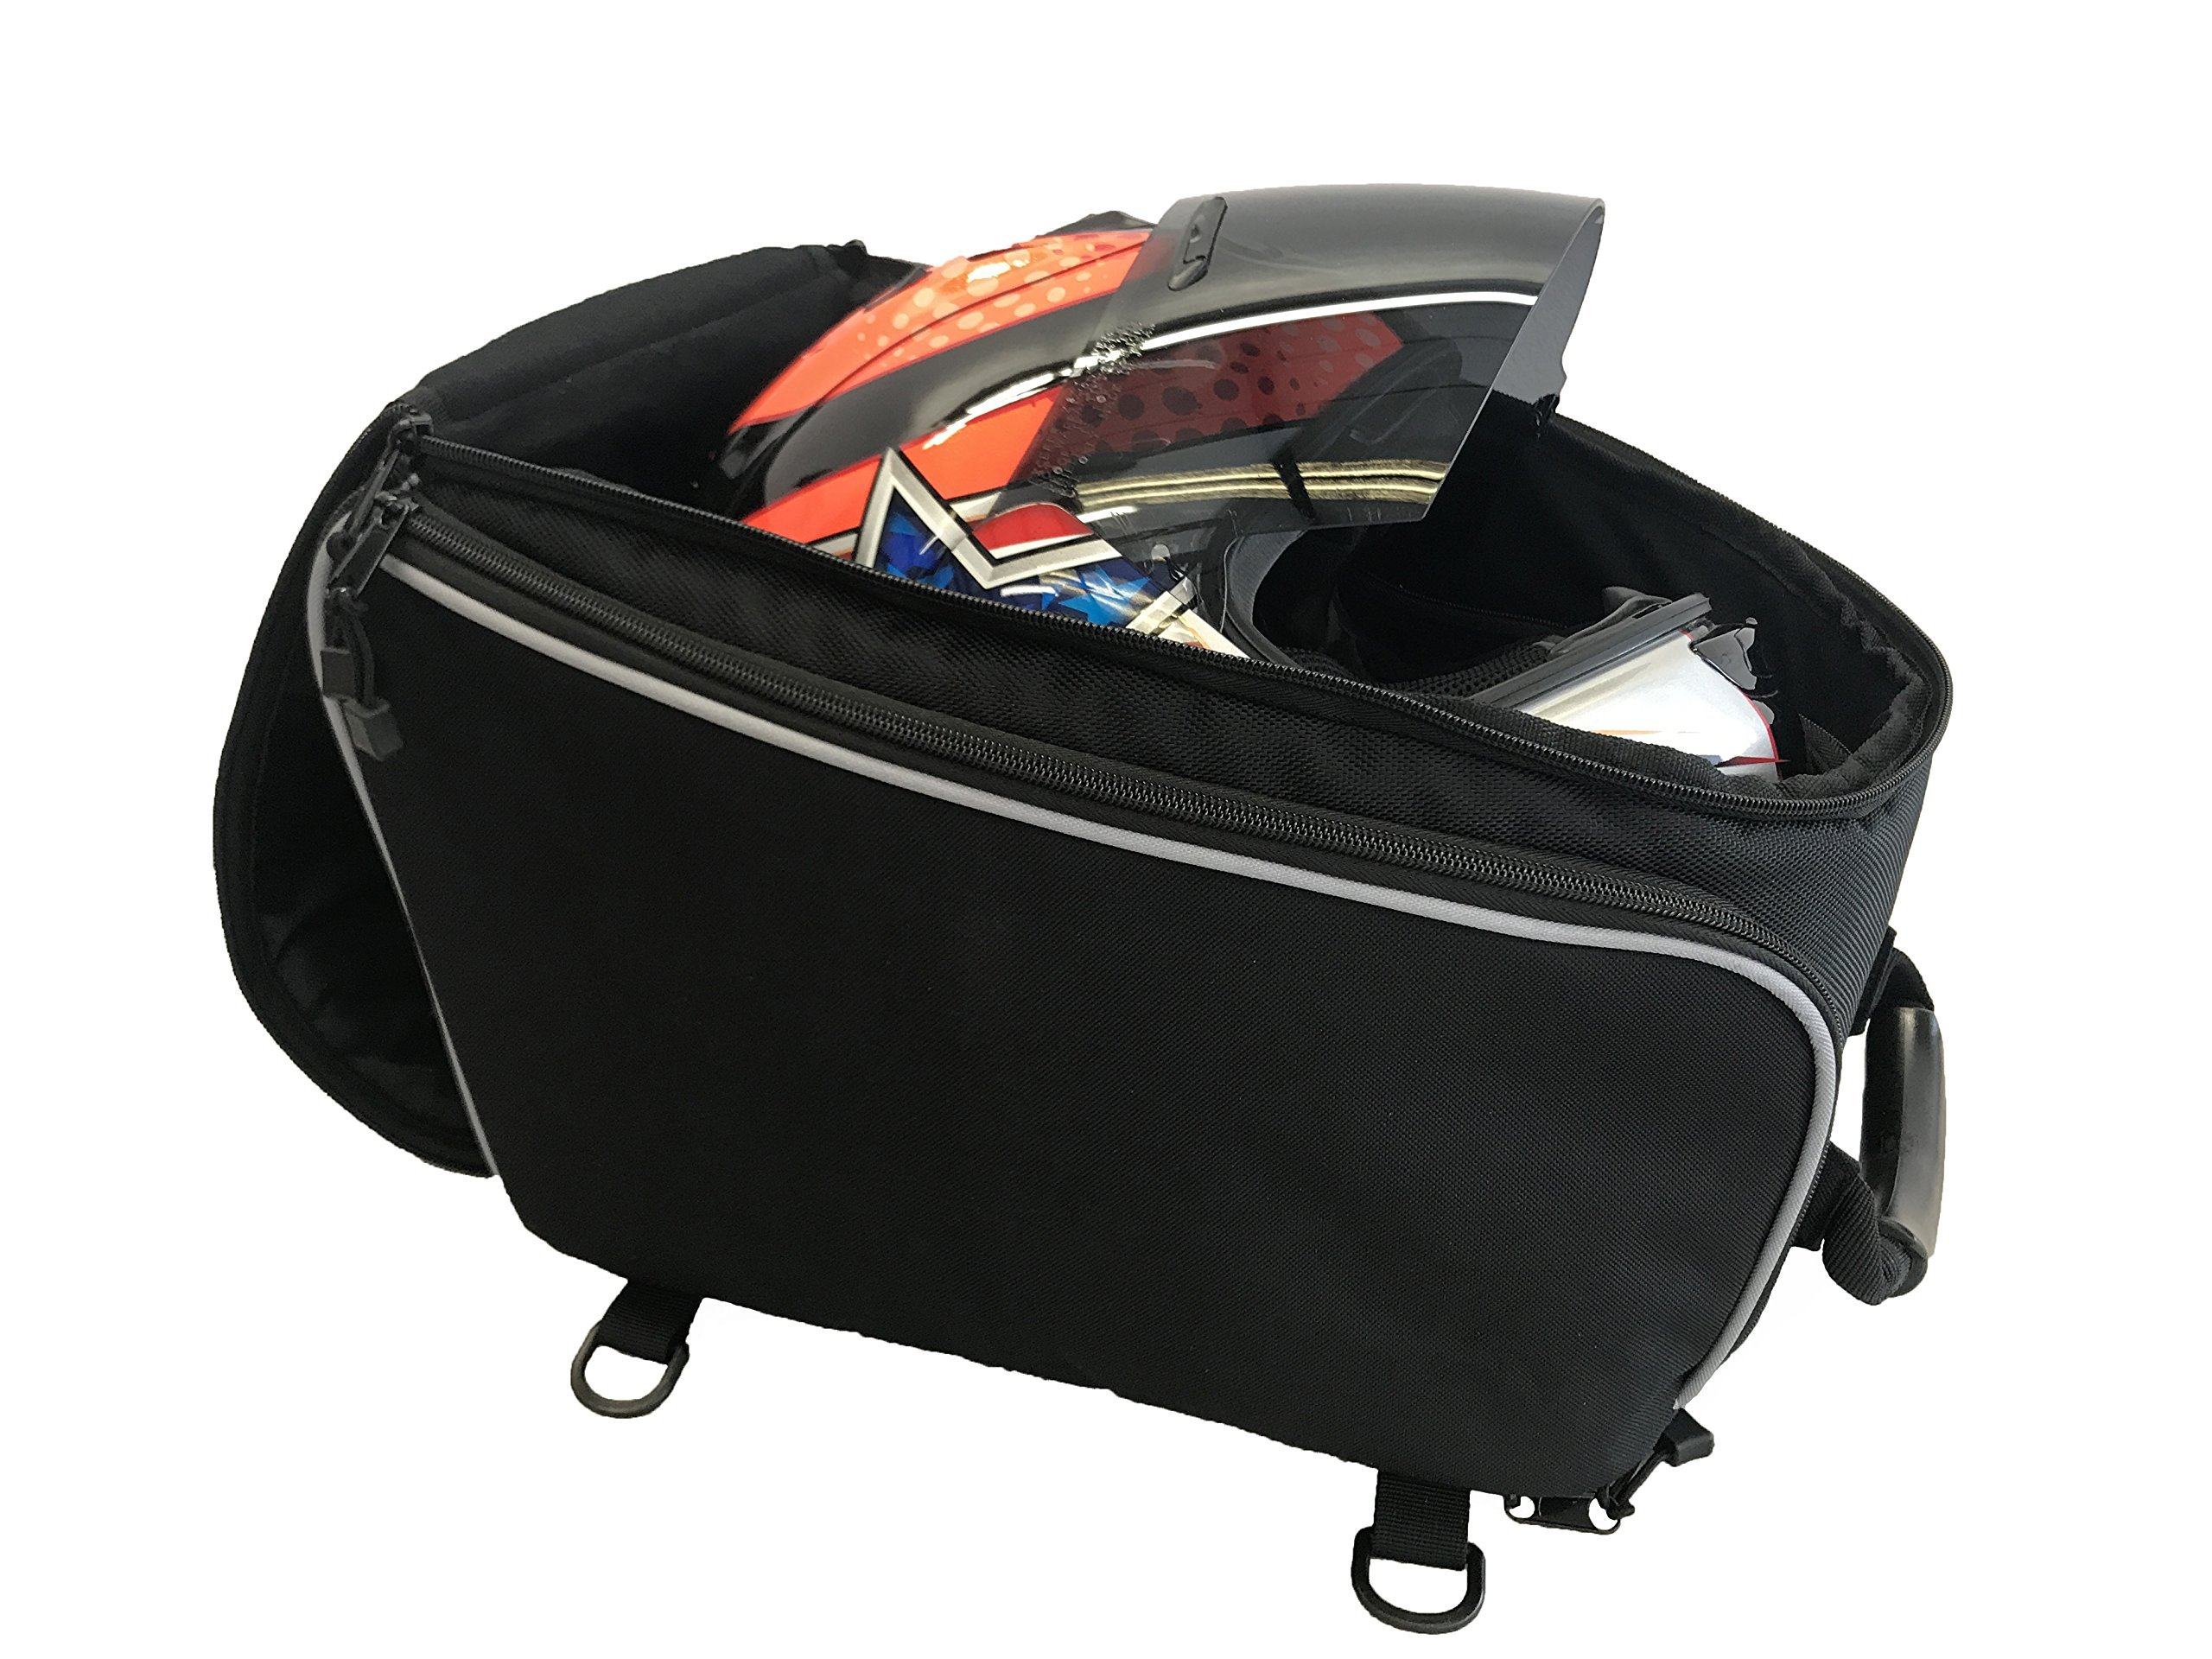 Deluxe Motorcycle Helmet Backpack Bag - Premium Quality Durable Helmet Storage Bag - Portable Removable Faceshield Protective Pouch - Sports, Motorbike Riders with Carrying Handle & Straps